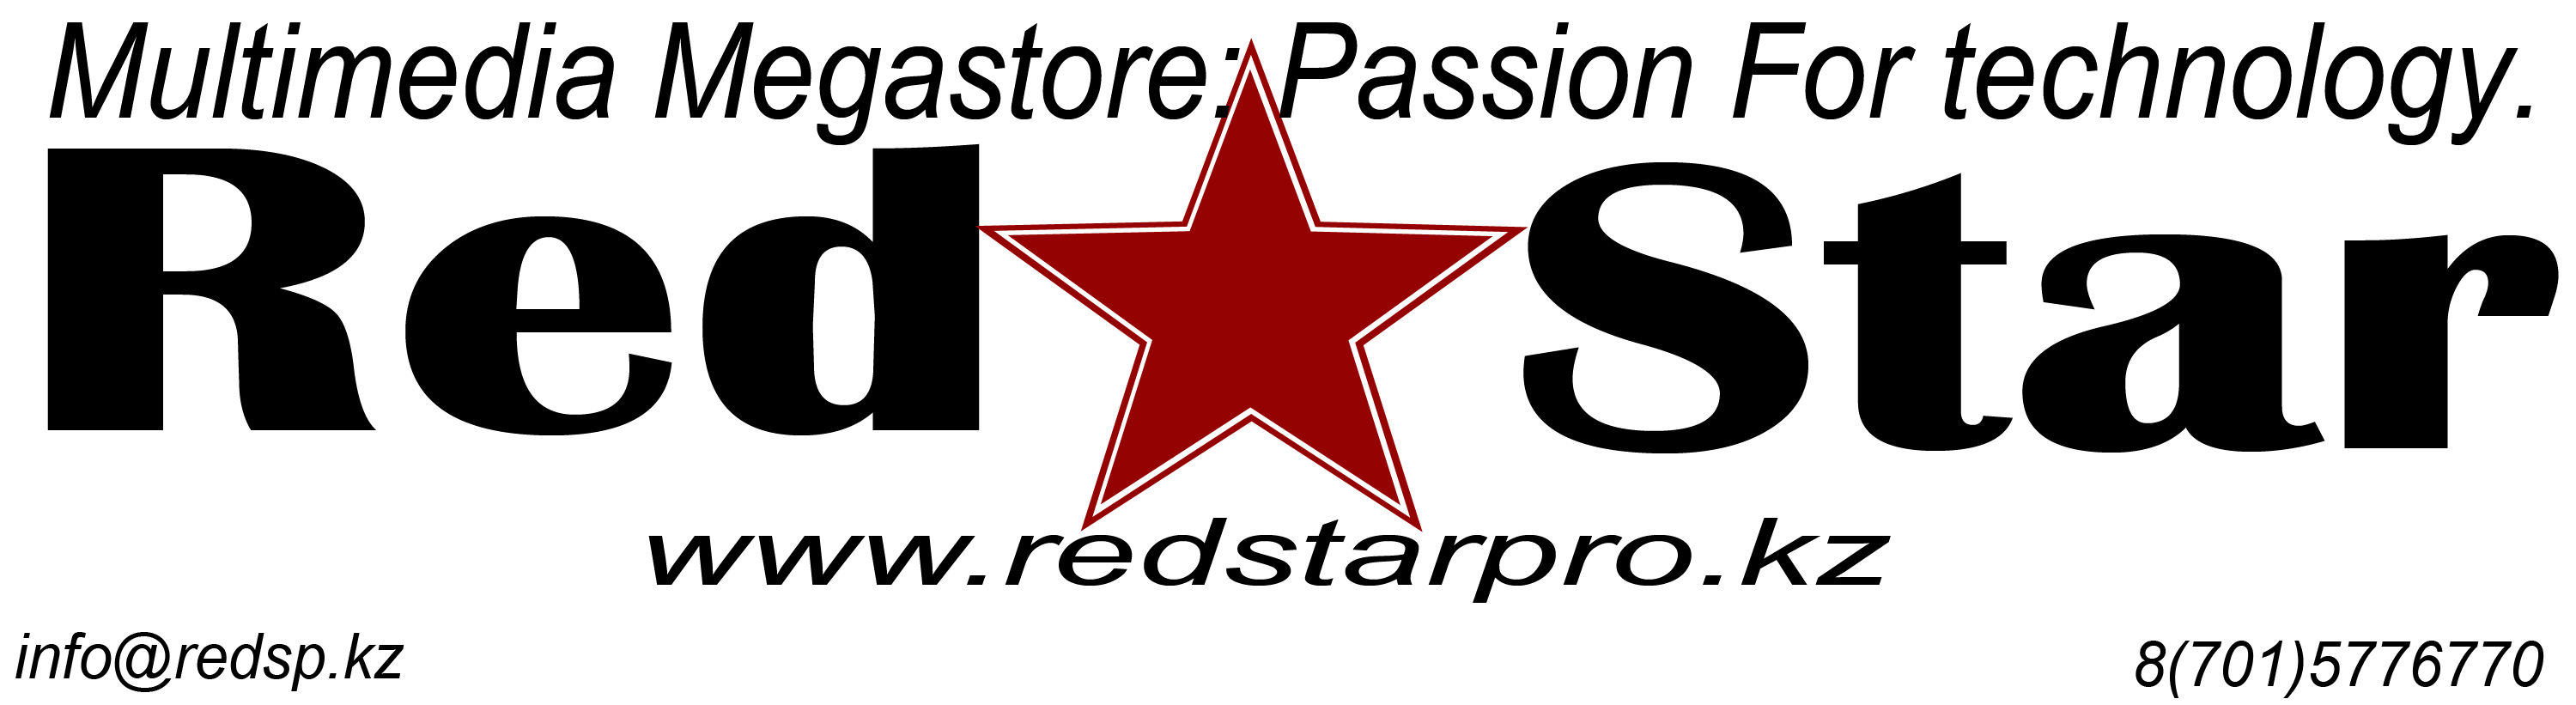 Red Star Pro